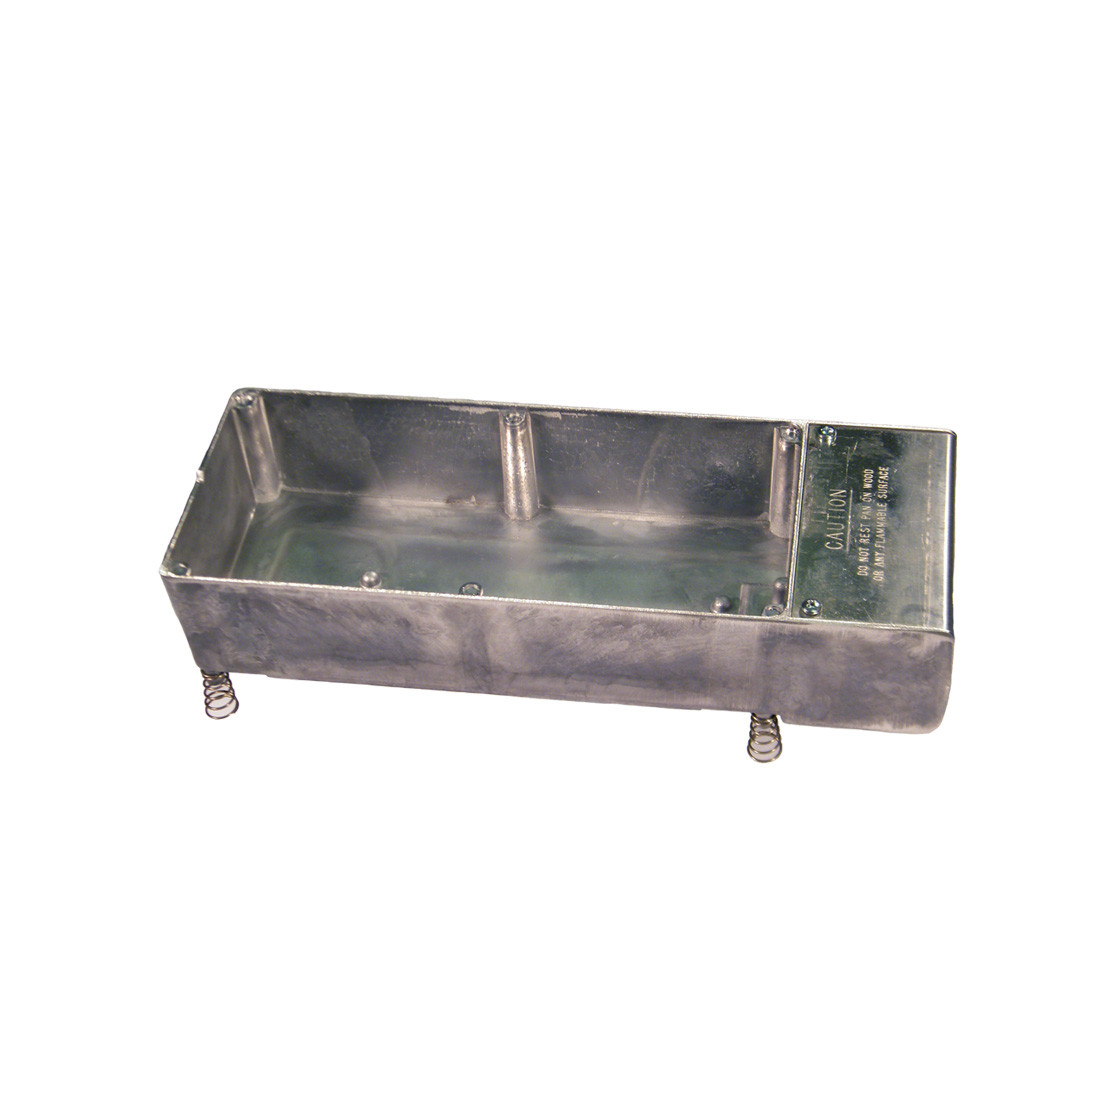 Pump House Evaporator Tray